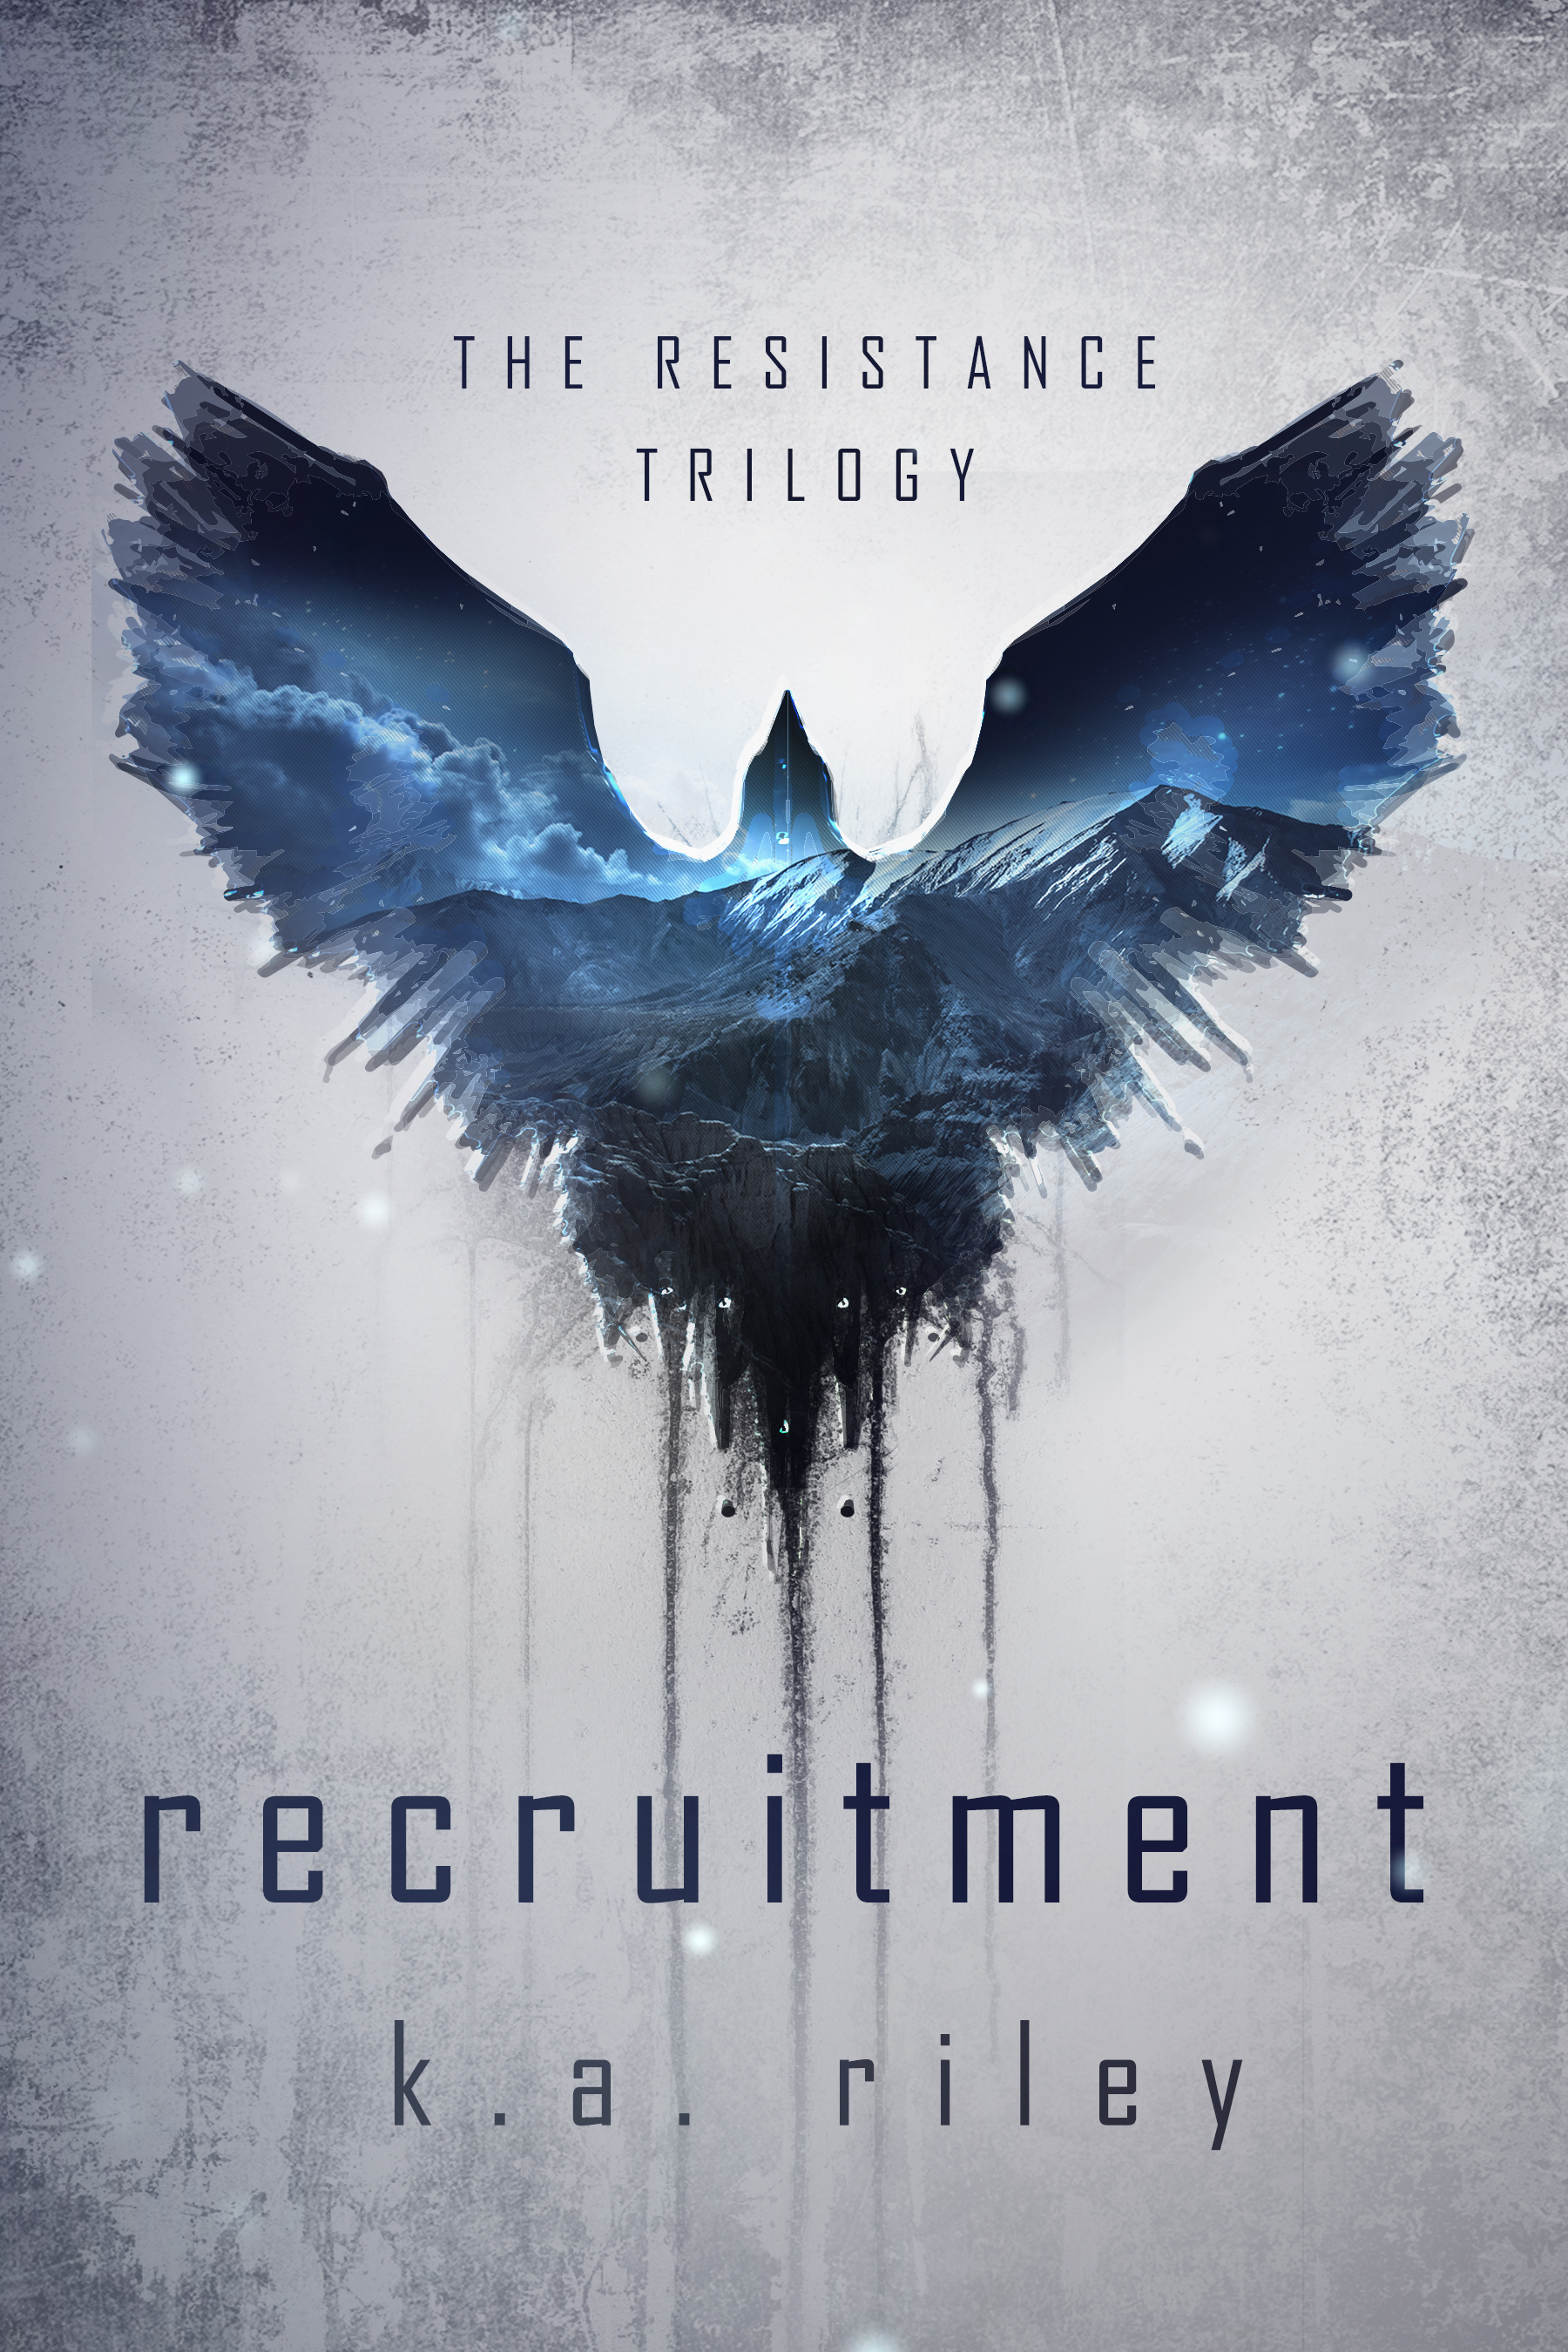 recruitment_1_3